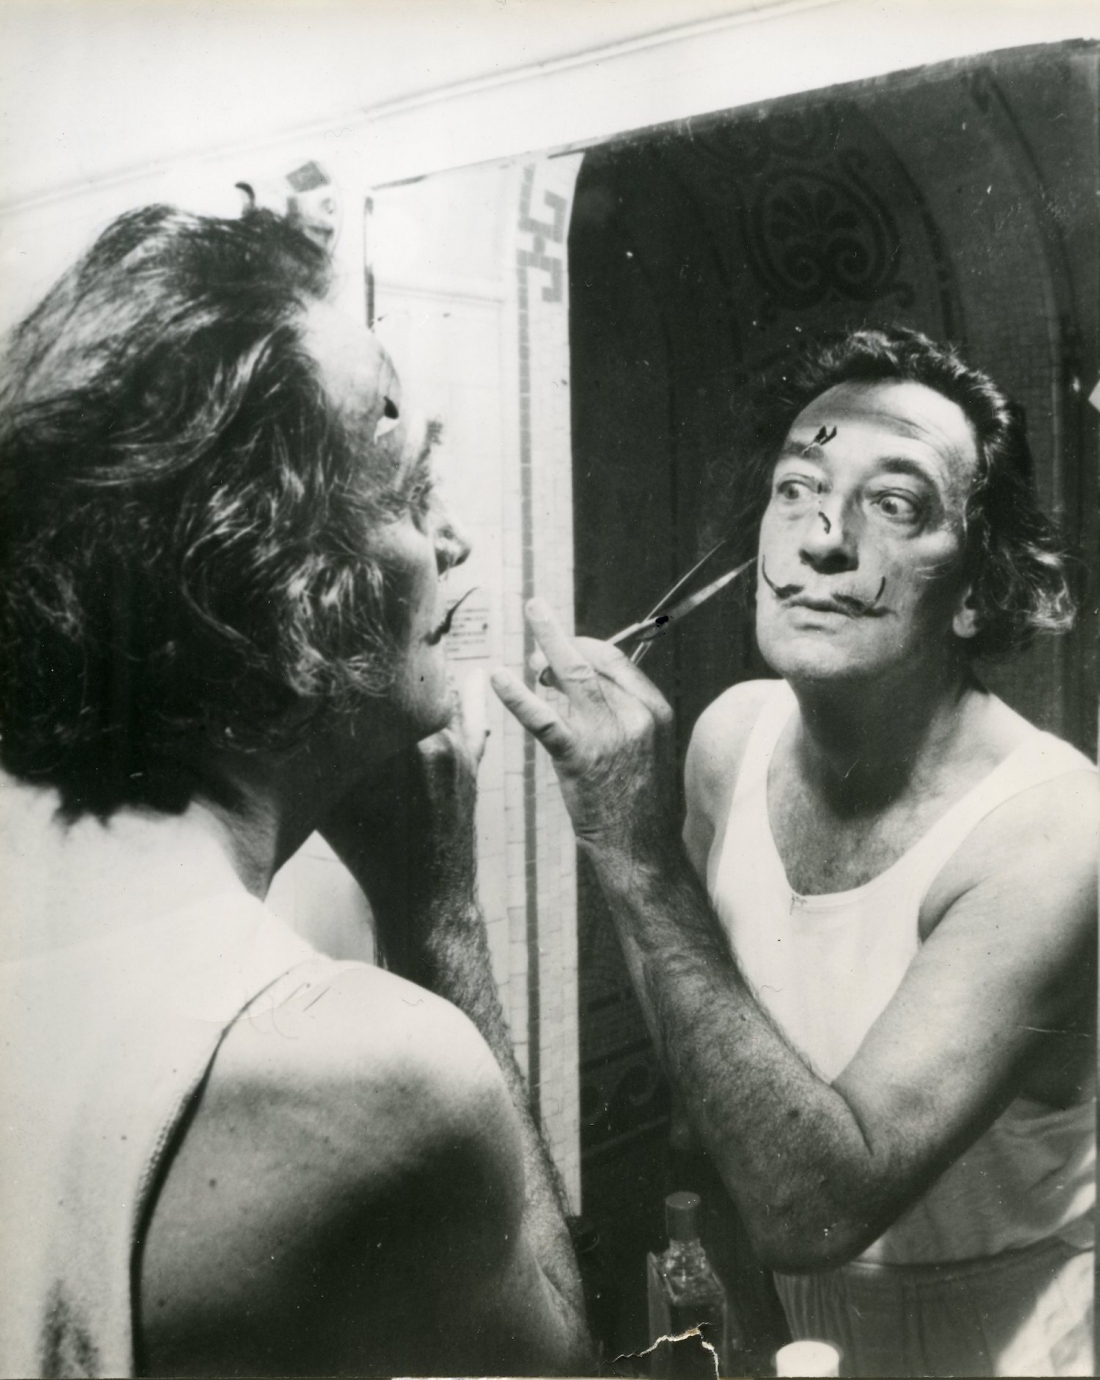 never before seen photographs of salvador dali and picasso unveiled